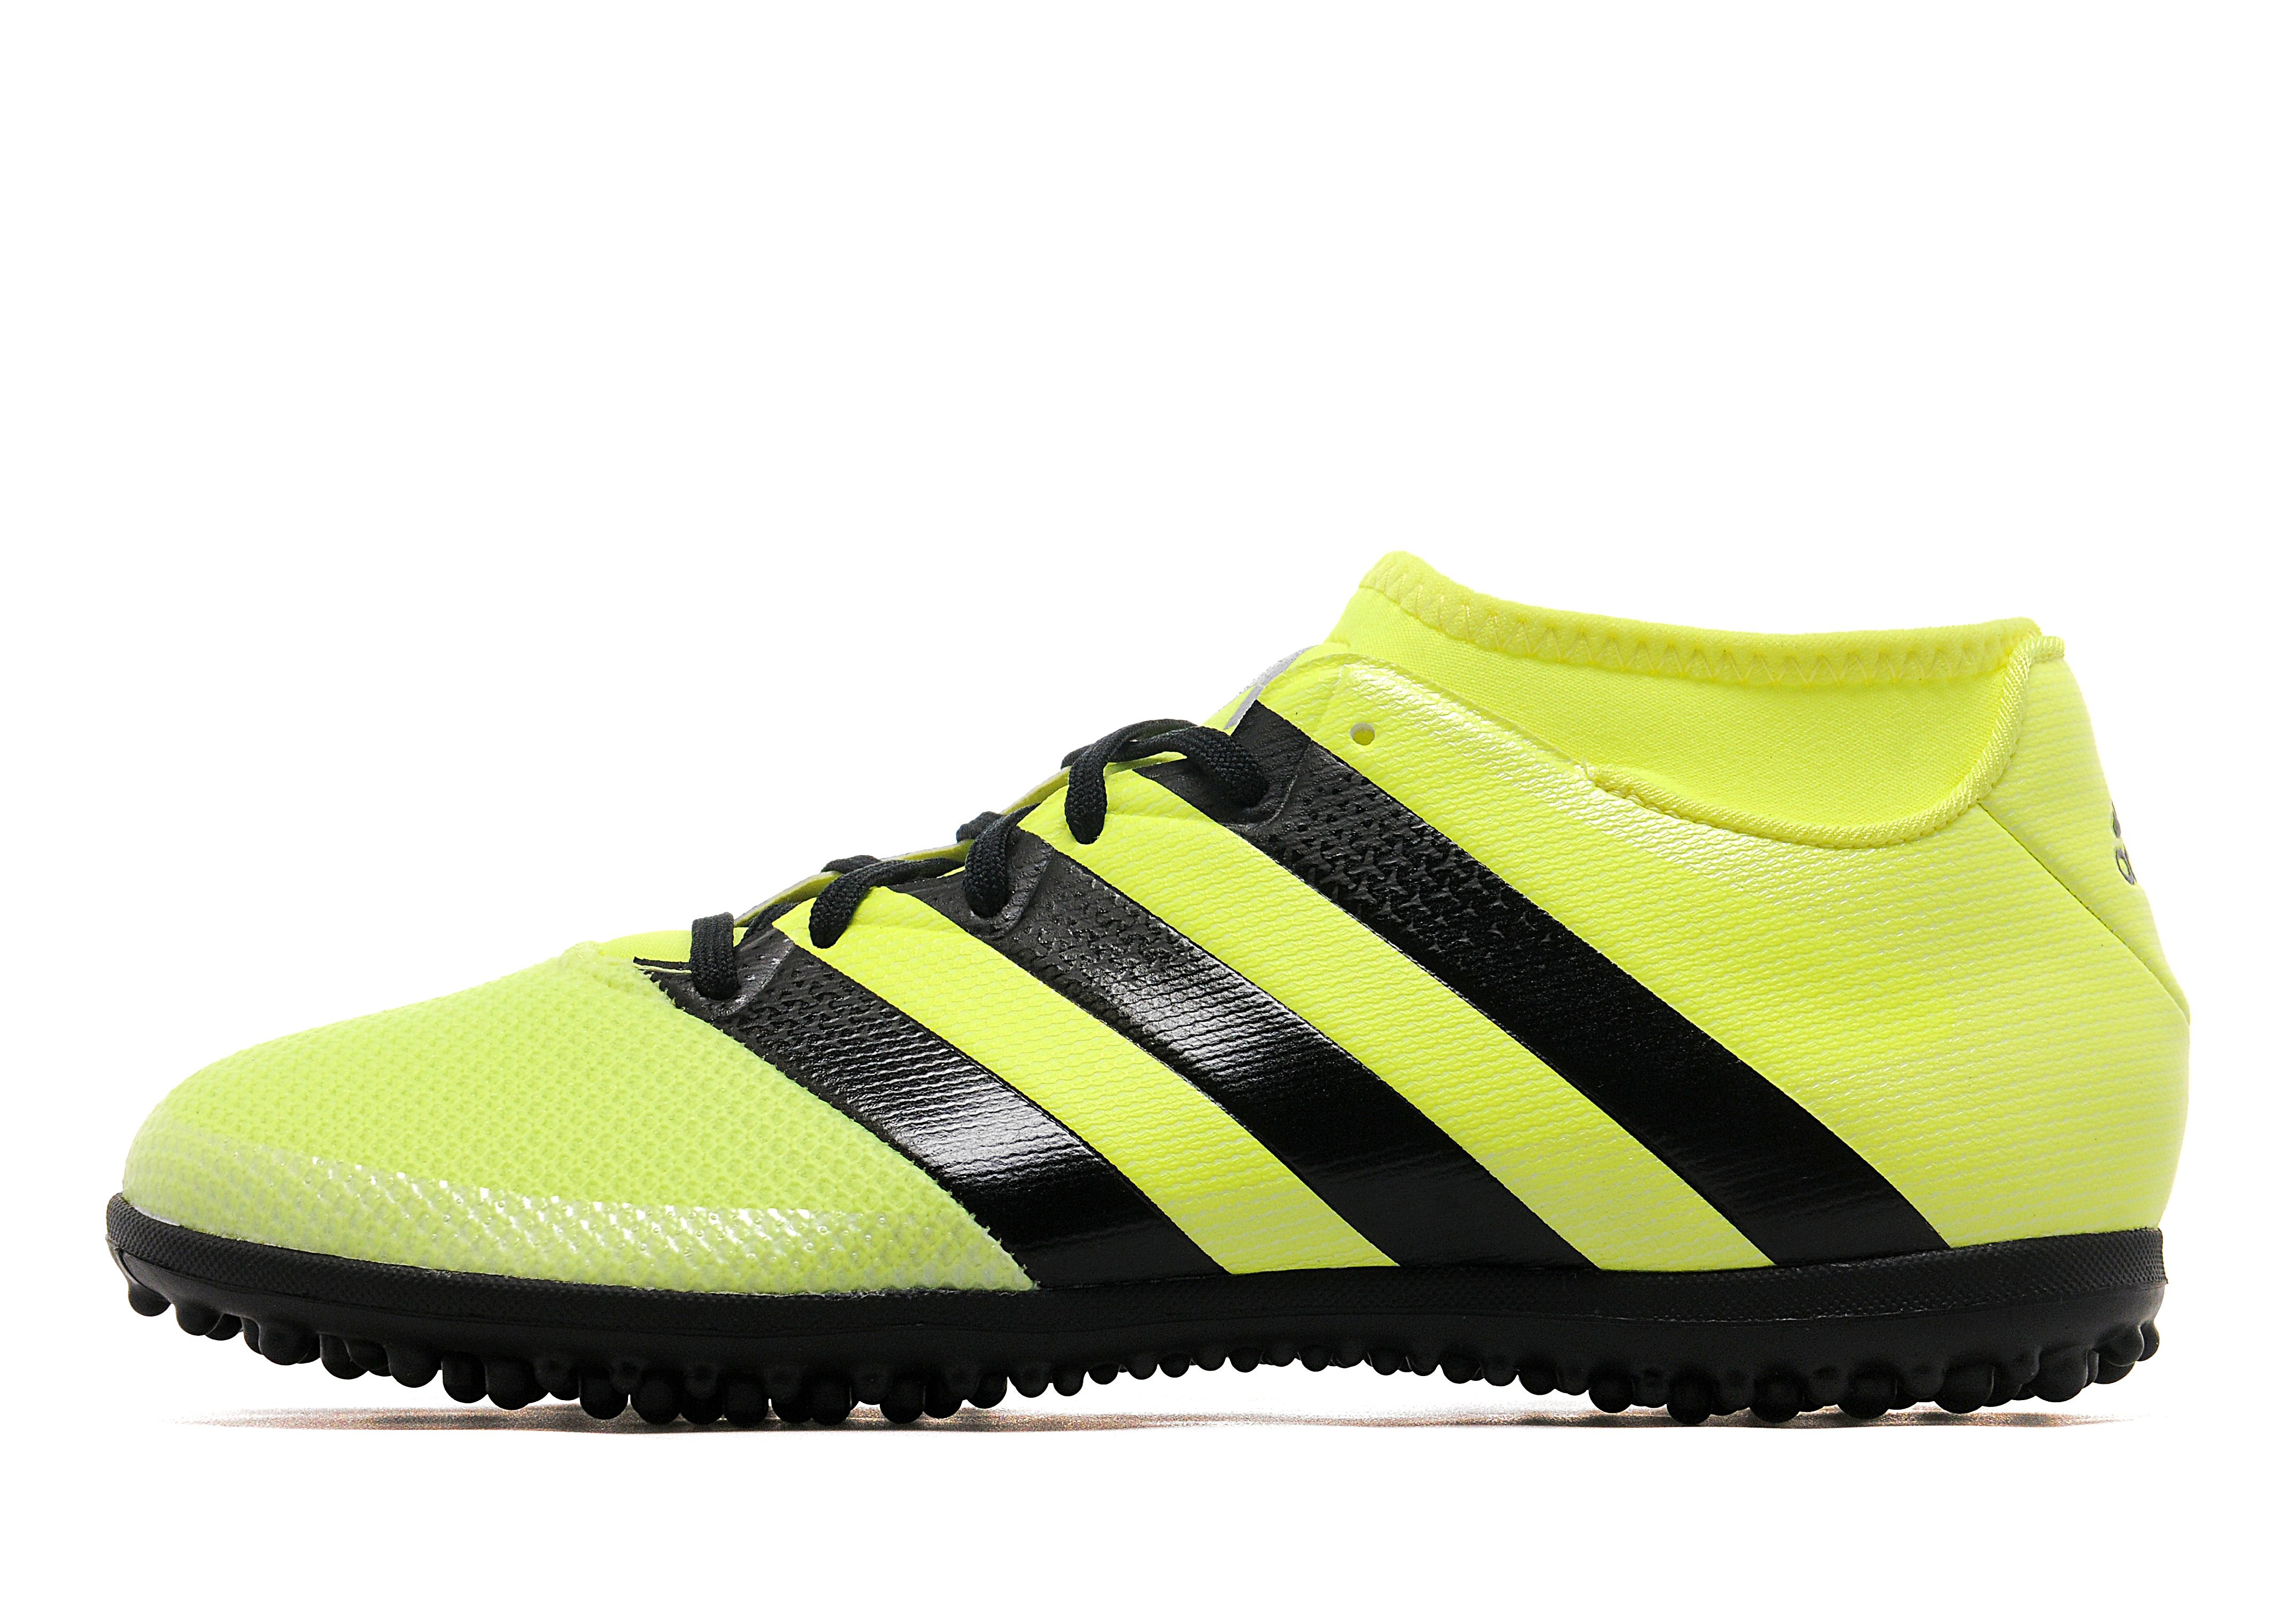 info for ba9c7 29617 adidas Ace 16.3 Primemesh Turf - Yellow - Mens